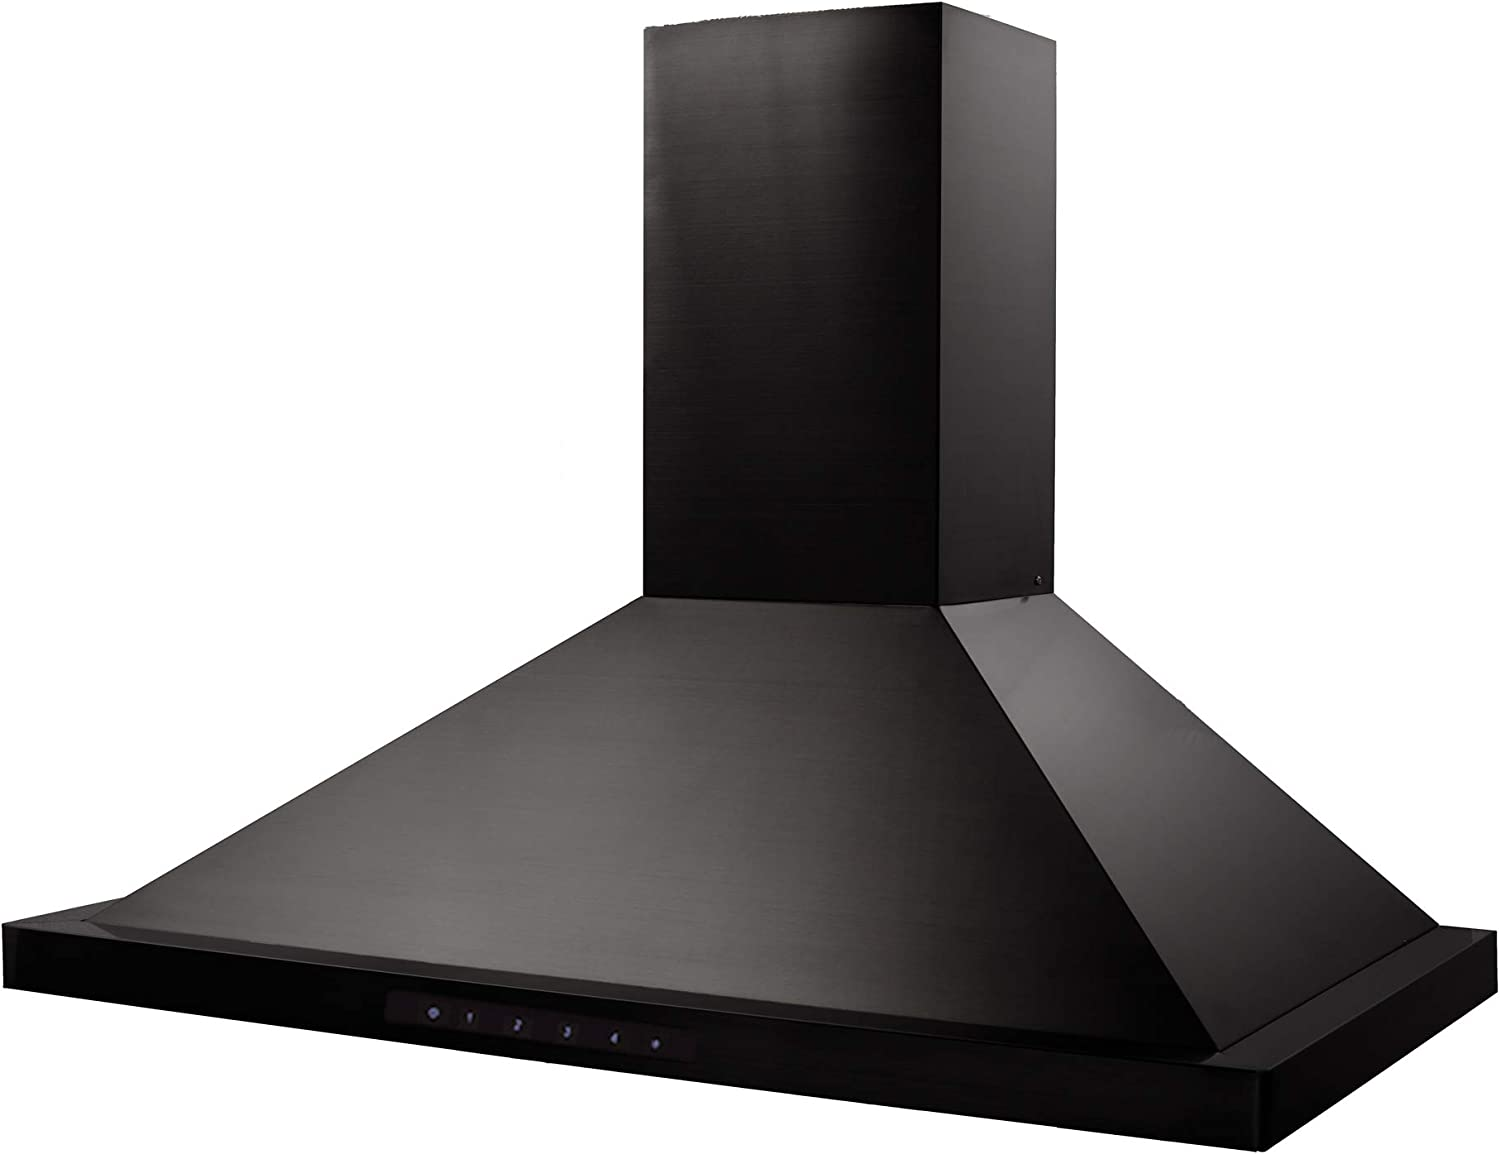 ZLINE 36 in. Wall Mount Range Hood in Black Stainless Steel (BSKBN-36)